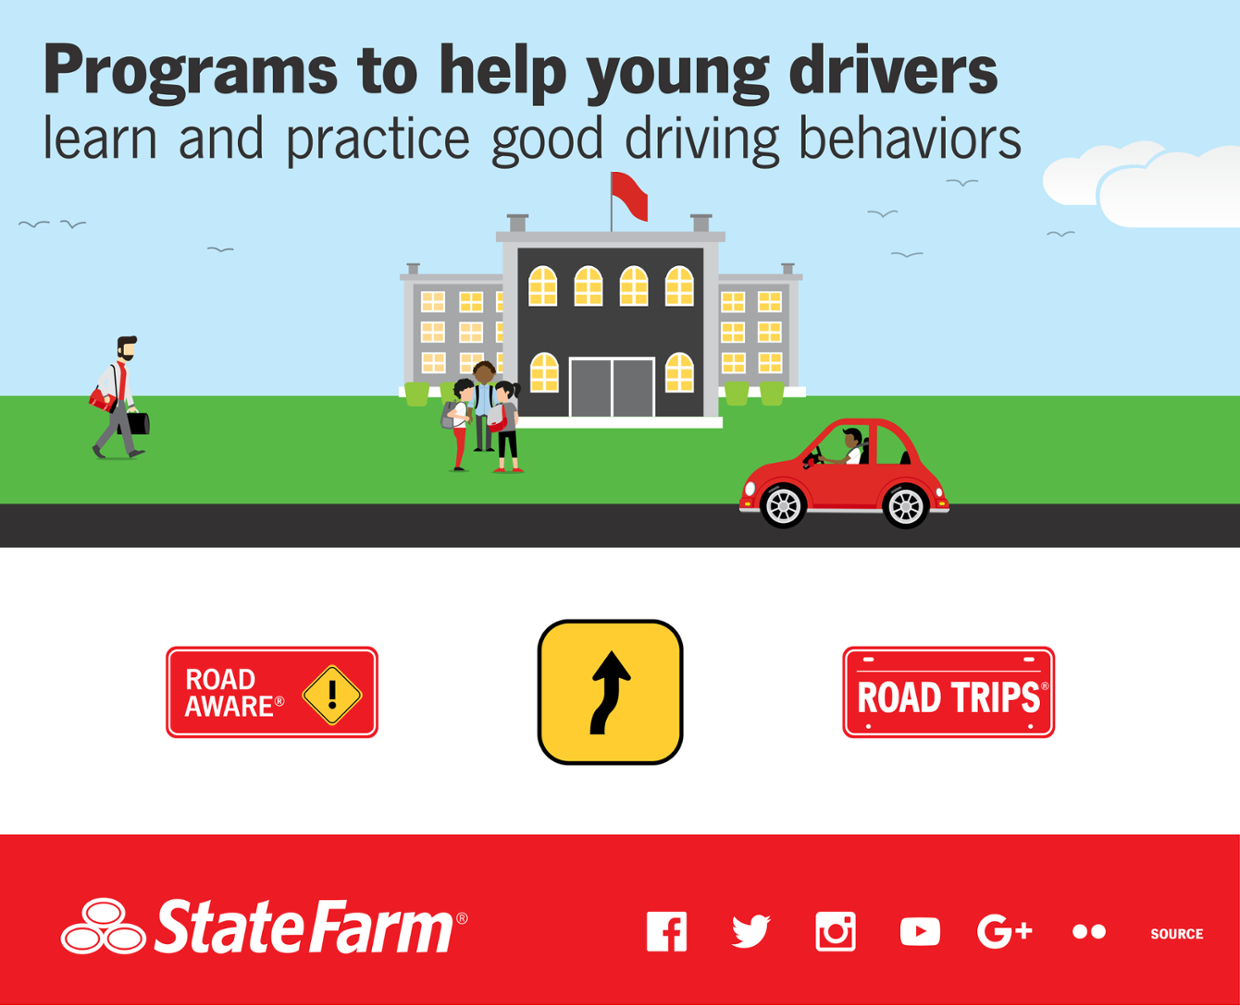 Programs to help young drivers